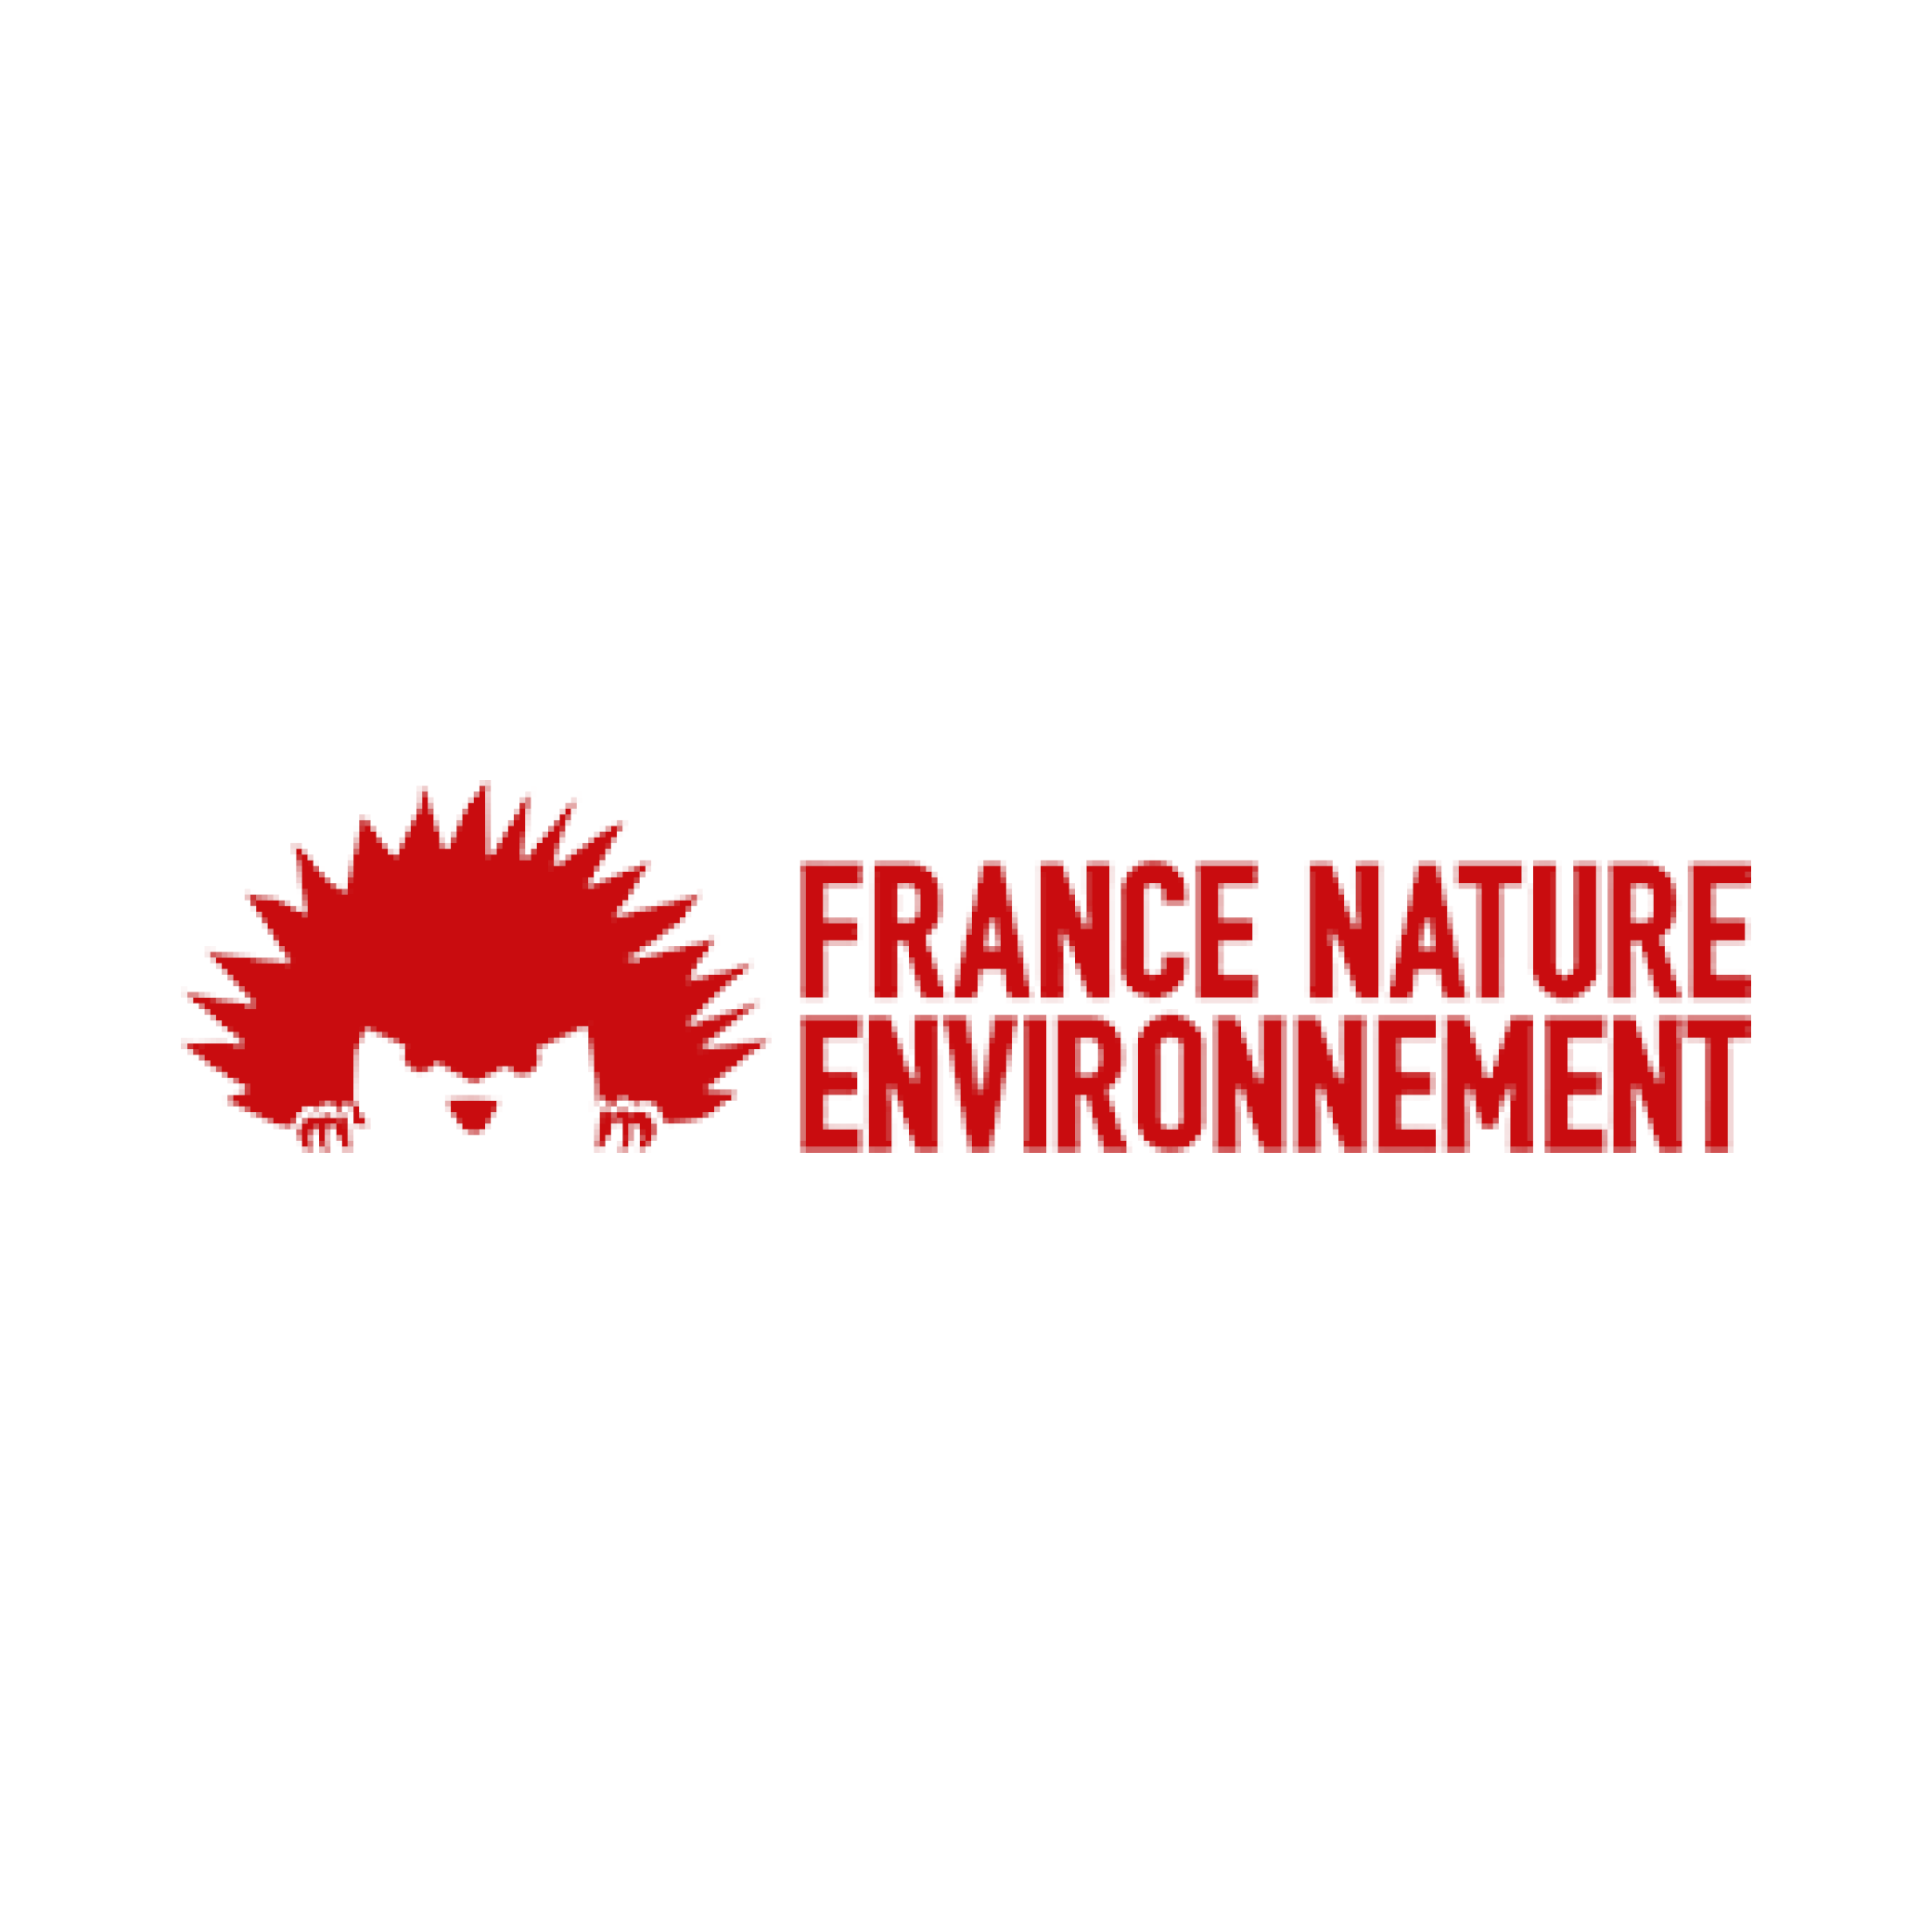 macaron_france-nature-environnement_web.png